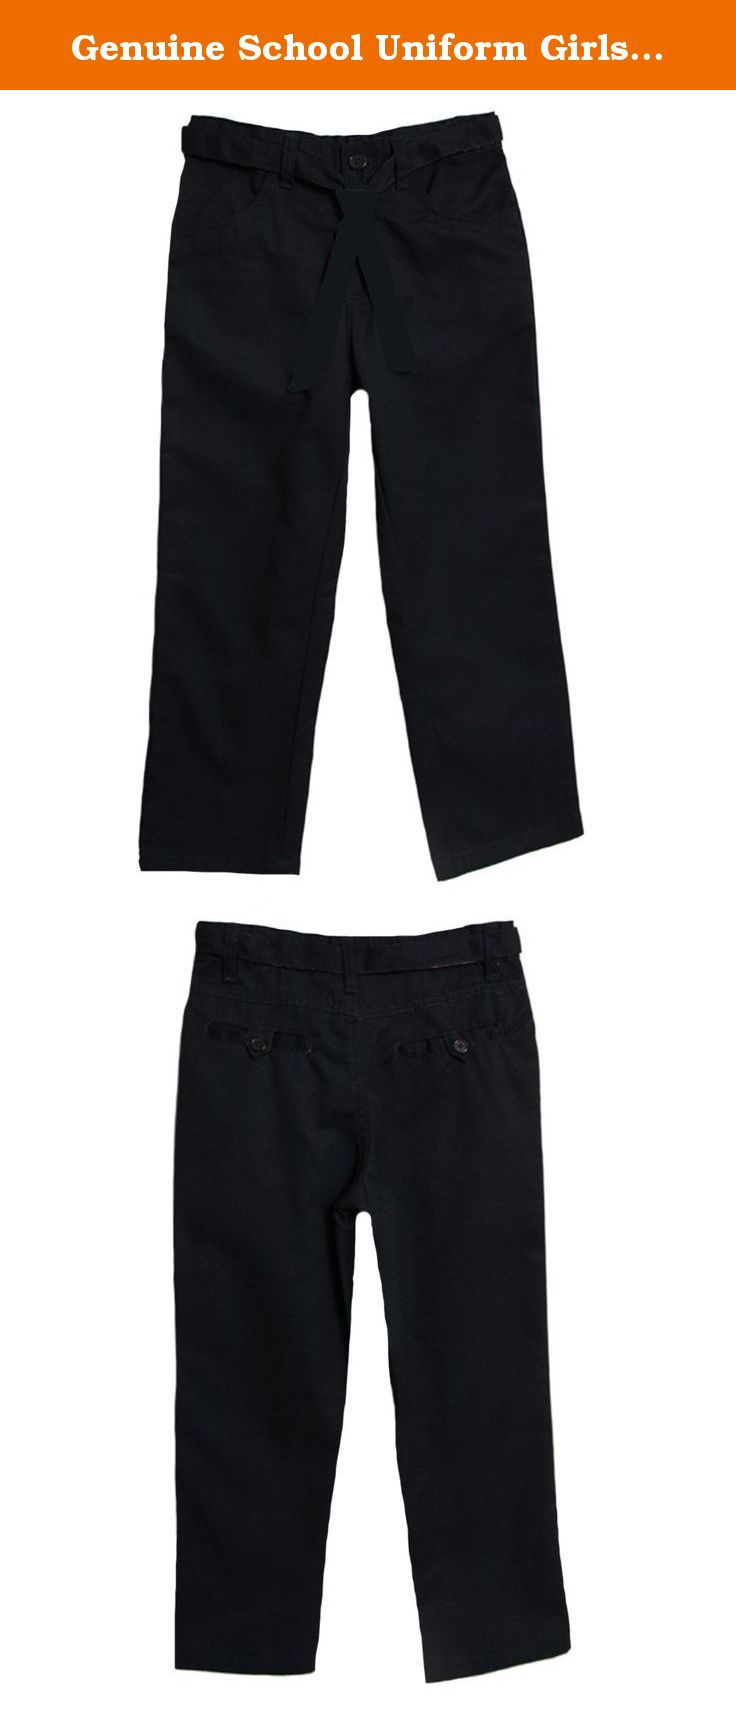 Genuine School Uniform Girls Navy Flat Front Belted Uniform Pants. Flat front with button and zipper closure / Inside adjustable elastic waistband / Reversible, removable belt / 60% cotton / 40% polyester / By: Genuine School Uniform.